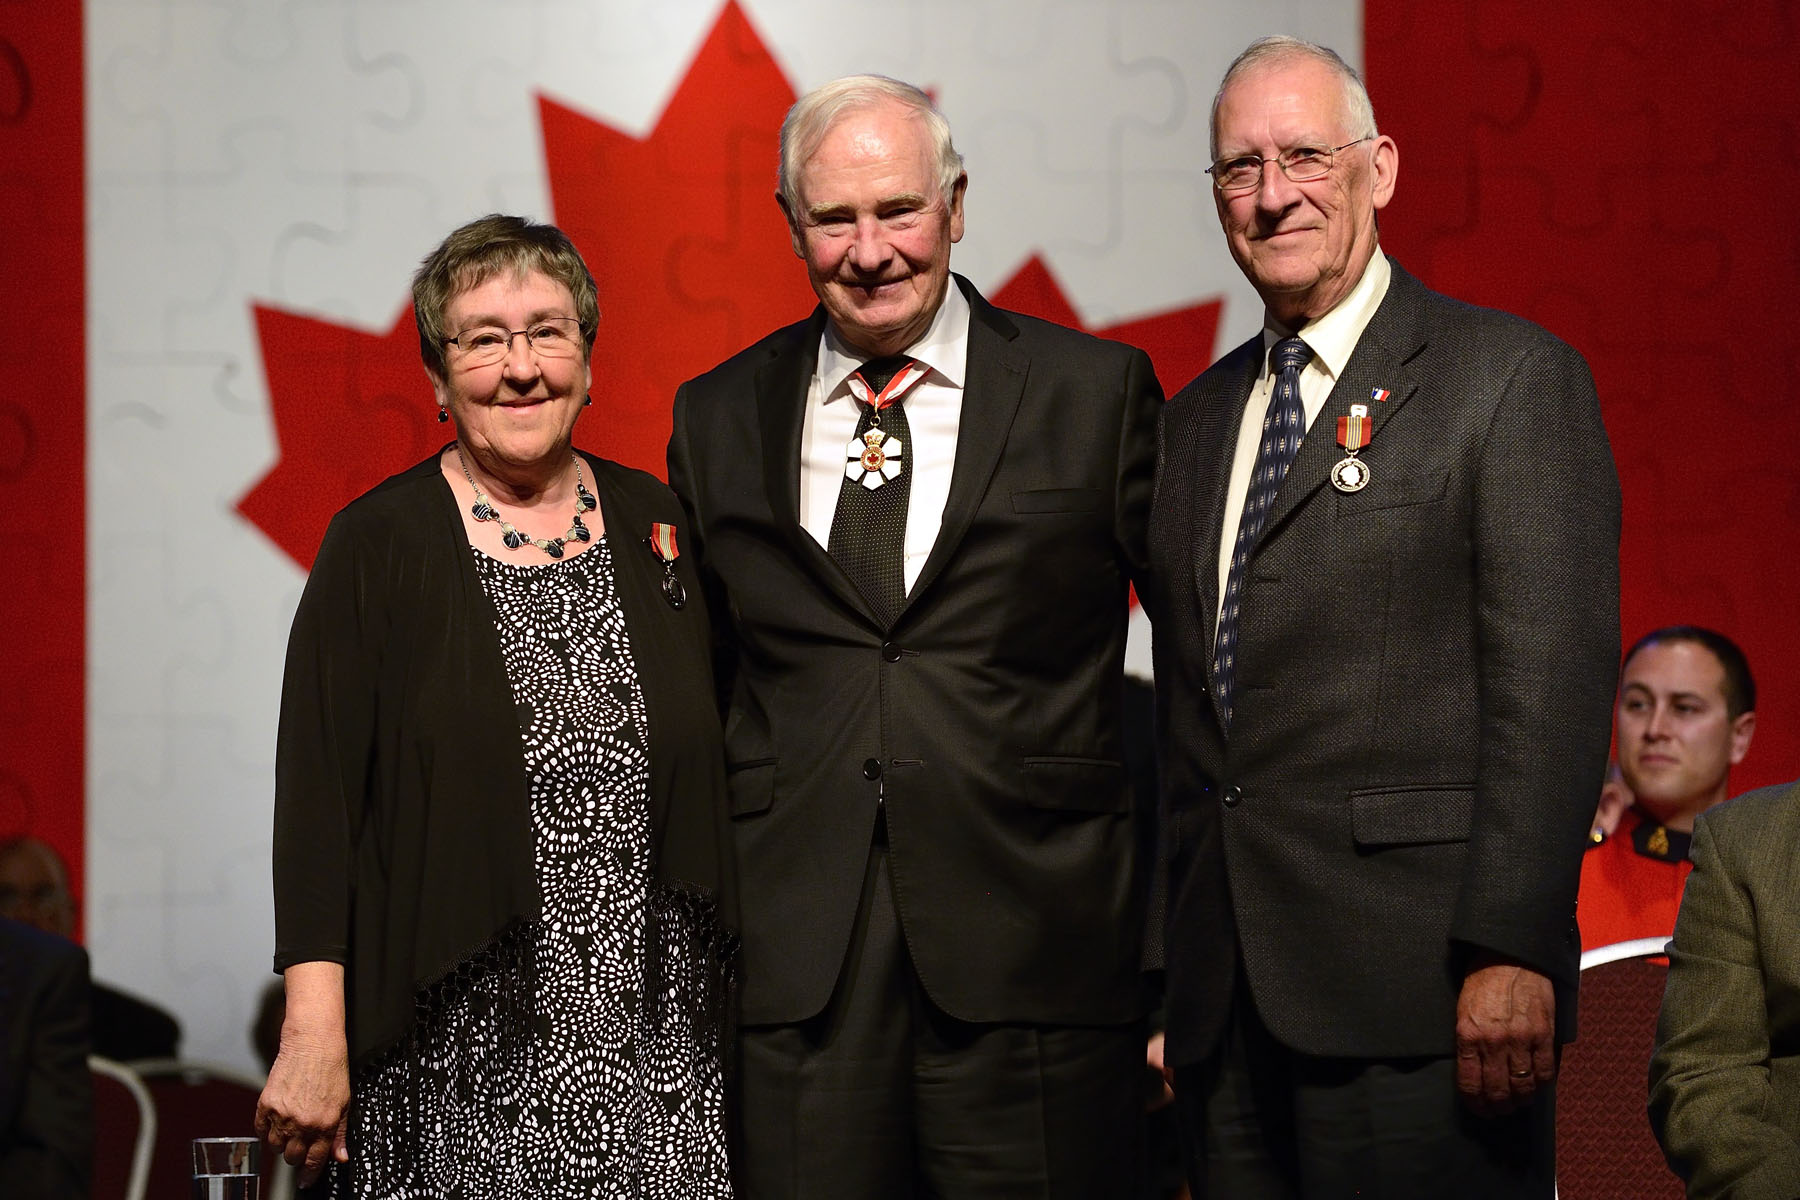 The Sovereign's Medal for Volunteers was presented to Zita and Edmond Gallant. The husband and wife duo has promoted French arts and culture with such organizations as the Coopérative de développement culturel et patrimonial de Mont-Carmel and Communities in Bloom. Through the years, they have brought together P.E.I.'s Francophone community and preserved French language and Acadian heritage.